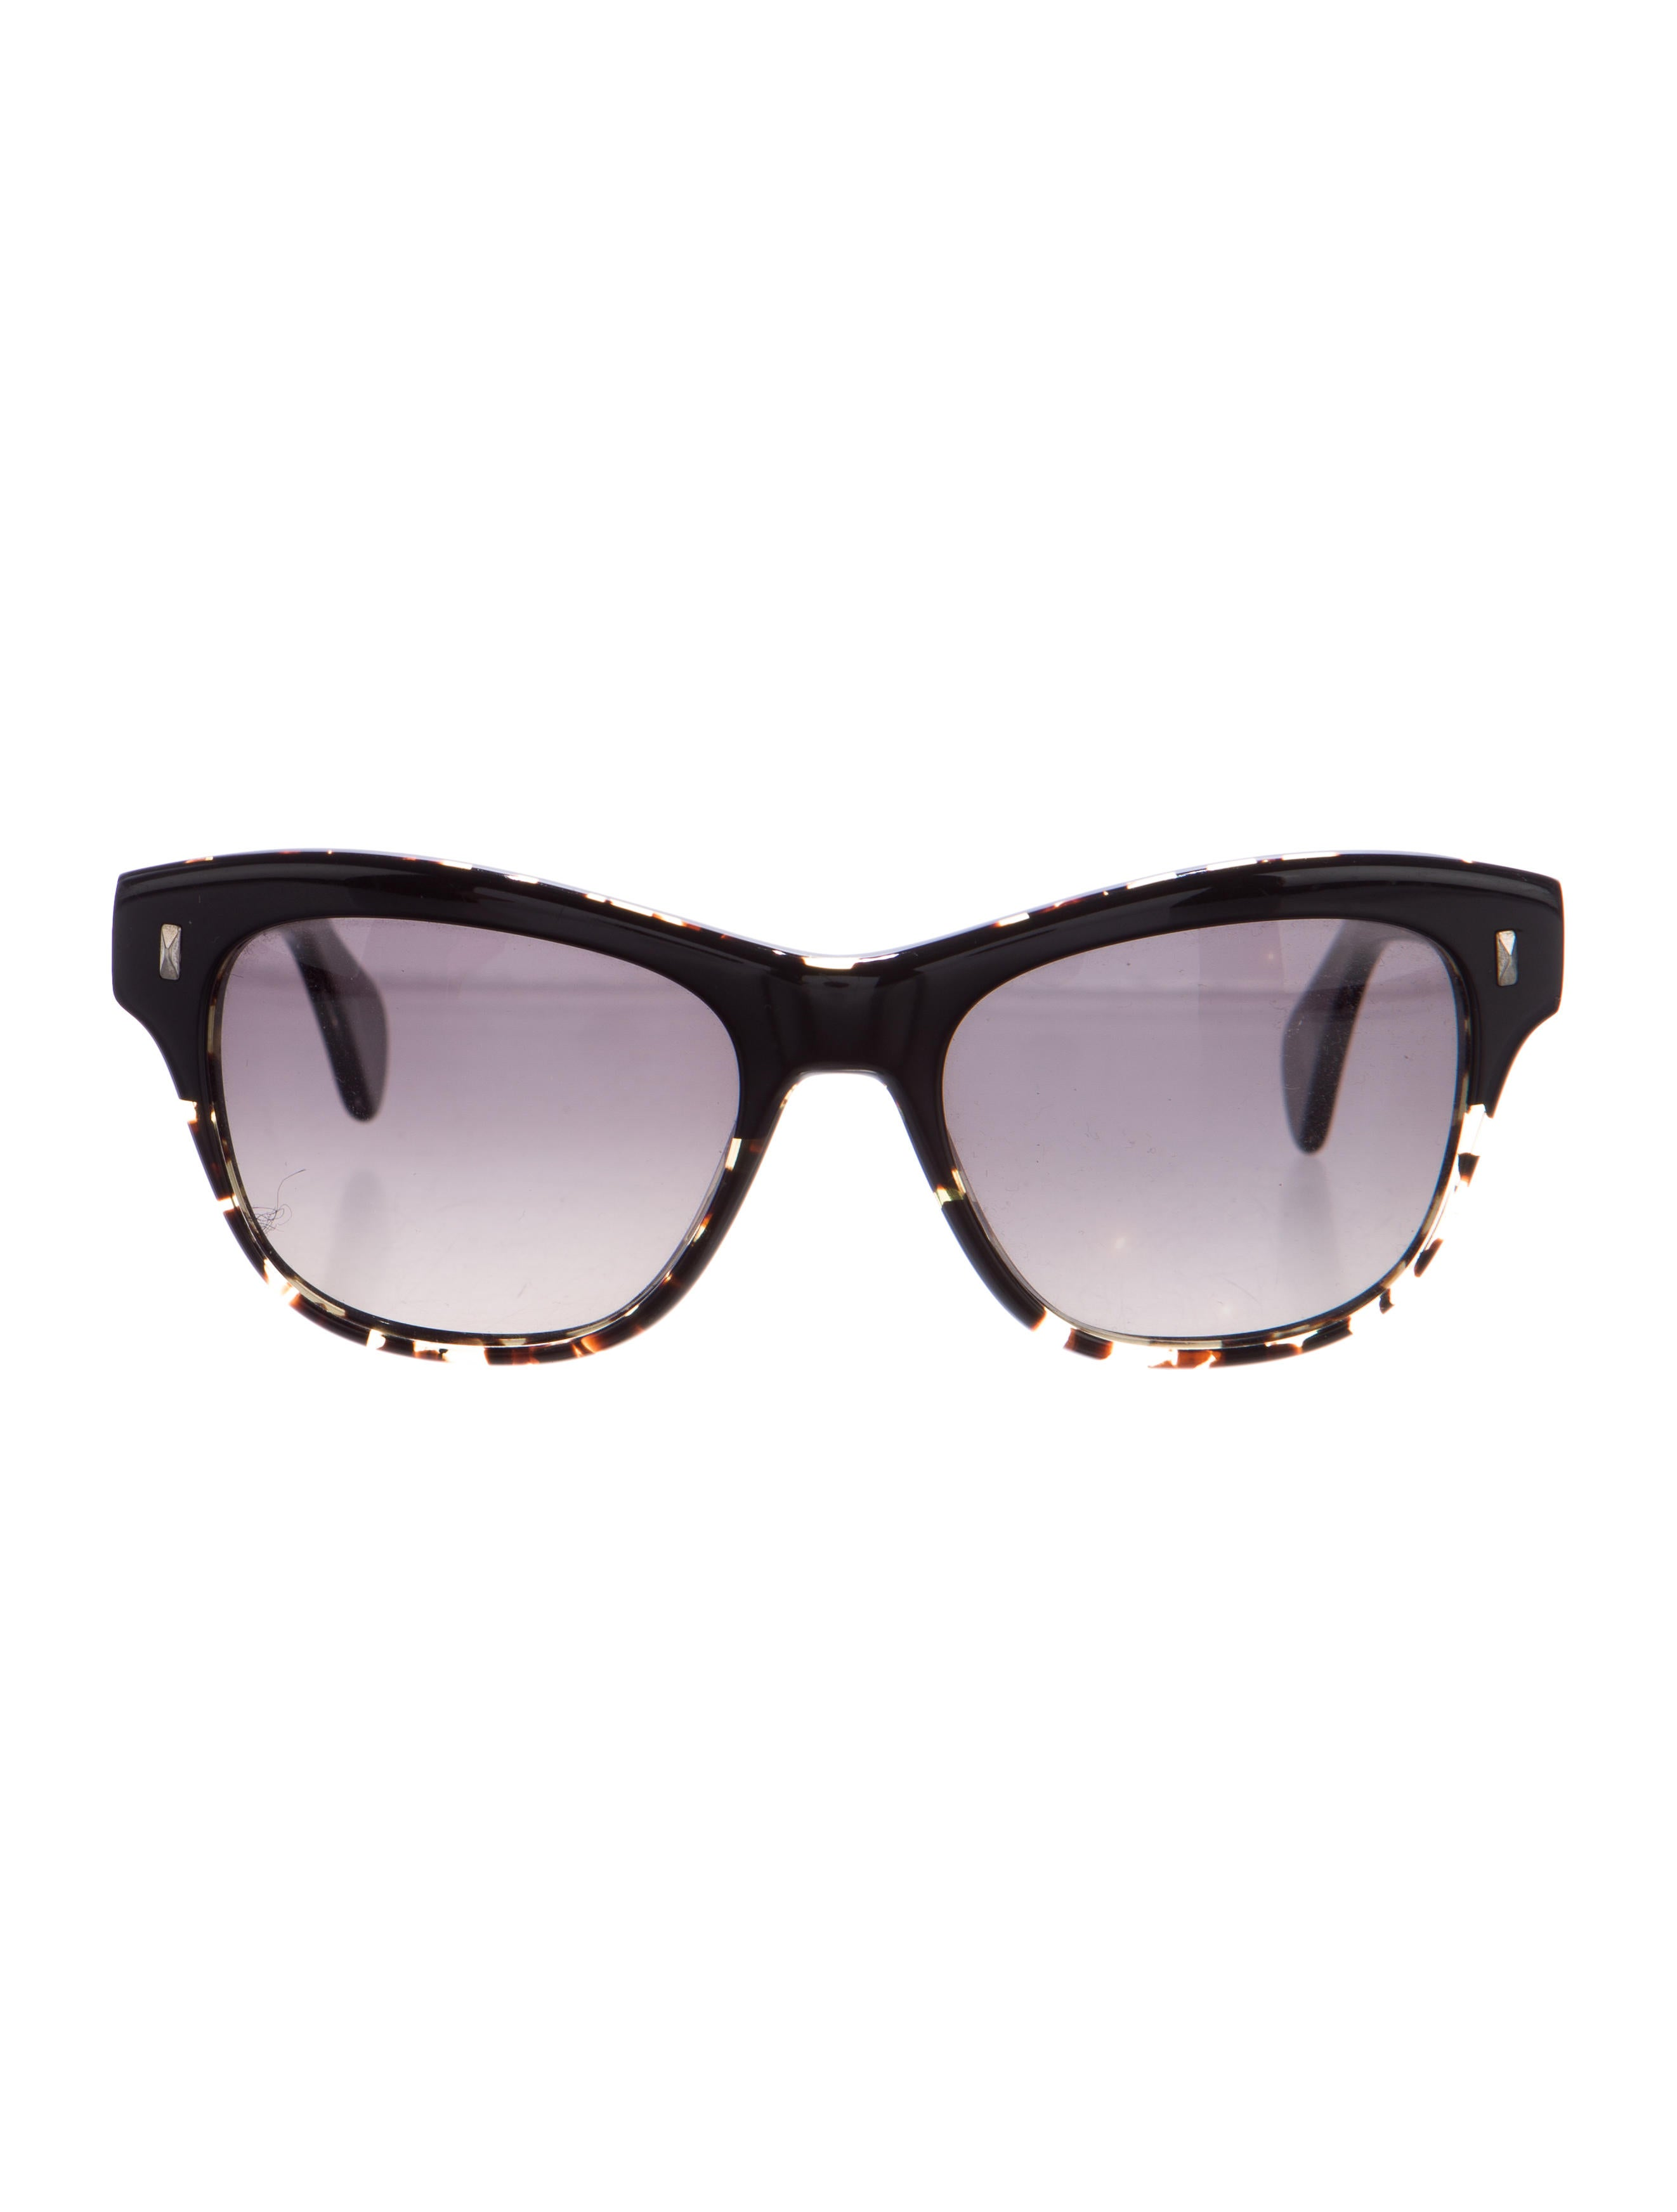 f43791a8cb Oliver Peoples Jacey Polarized Sunglasses - Accessories - WOP22601 ...